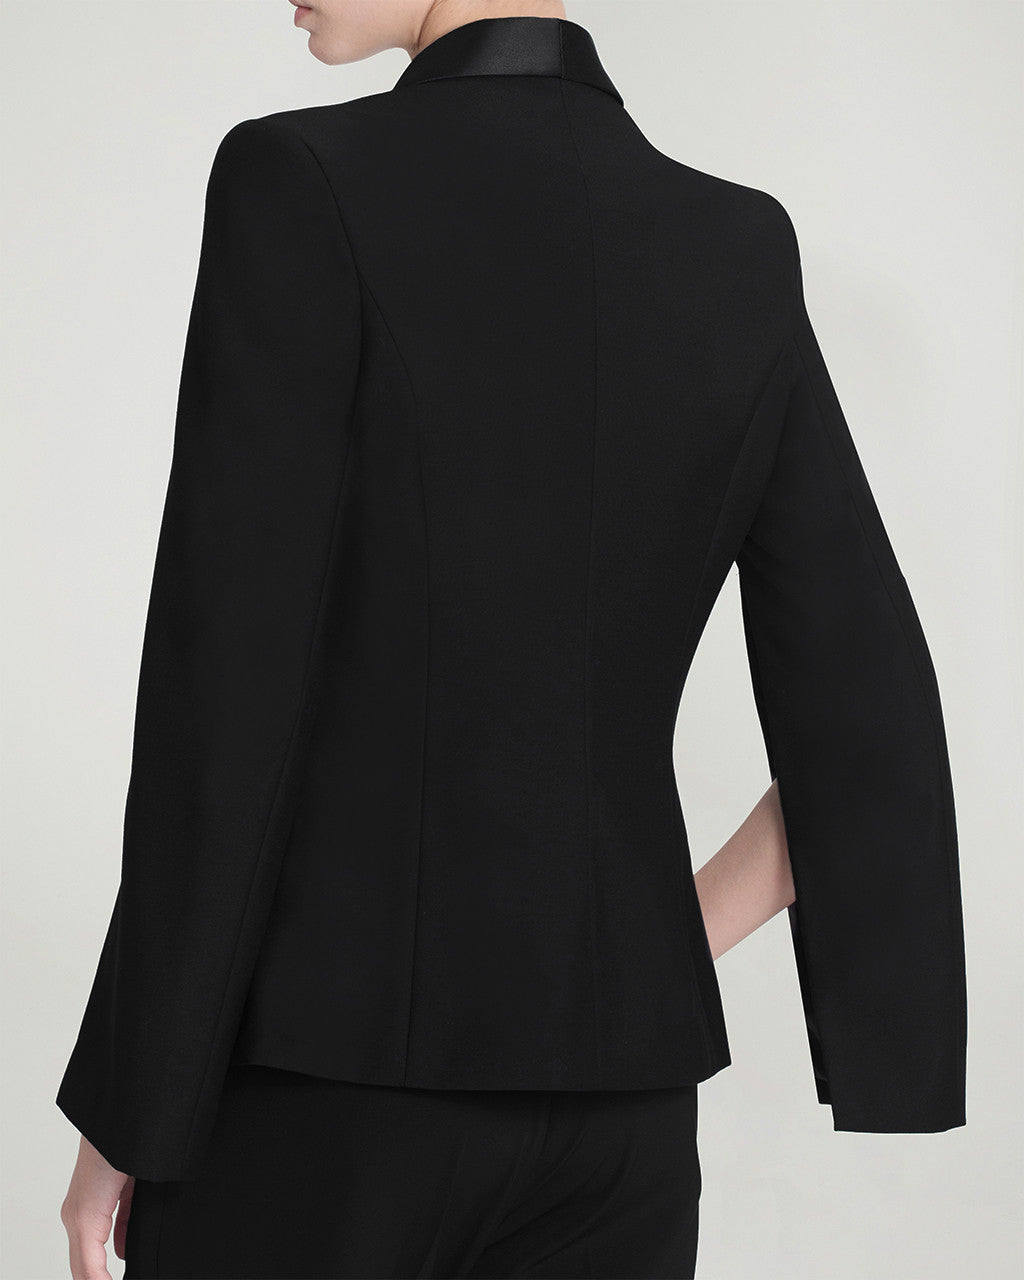 BLAZER CAPE WITH CONTRAST SATIN LAPEL - BLACK